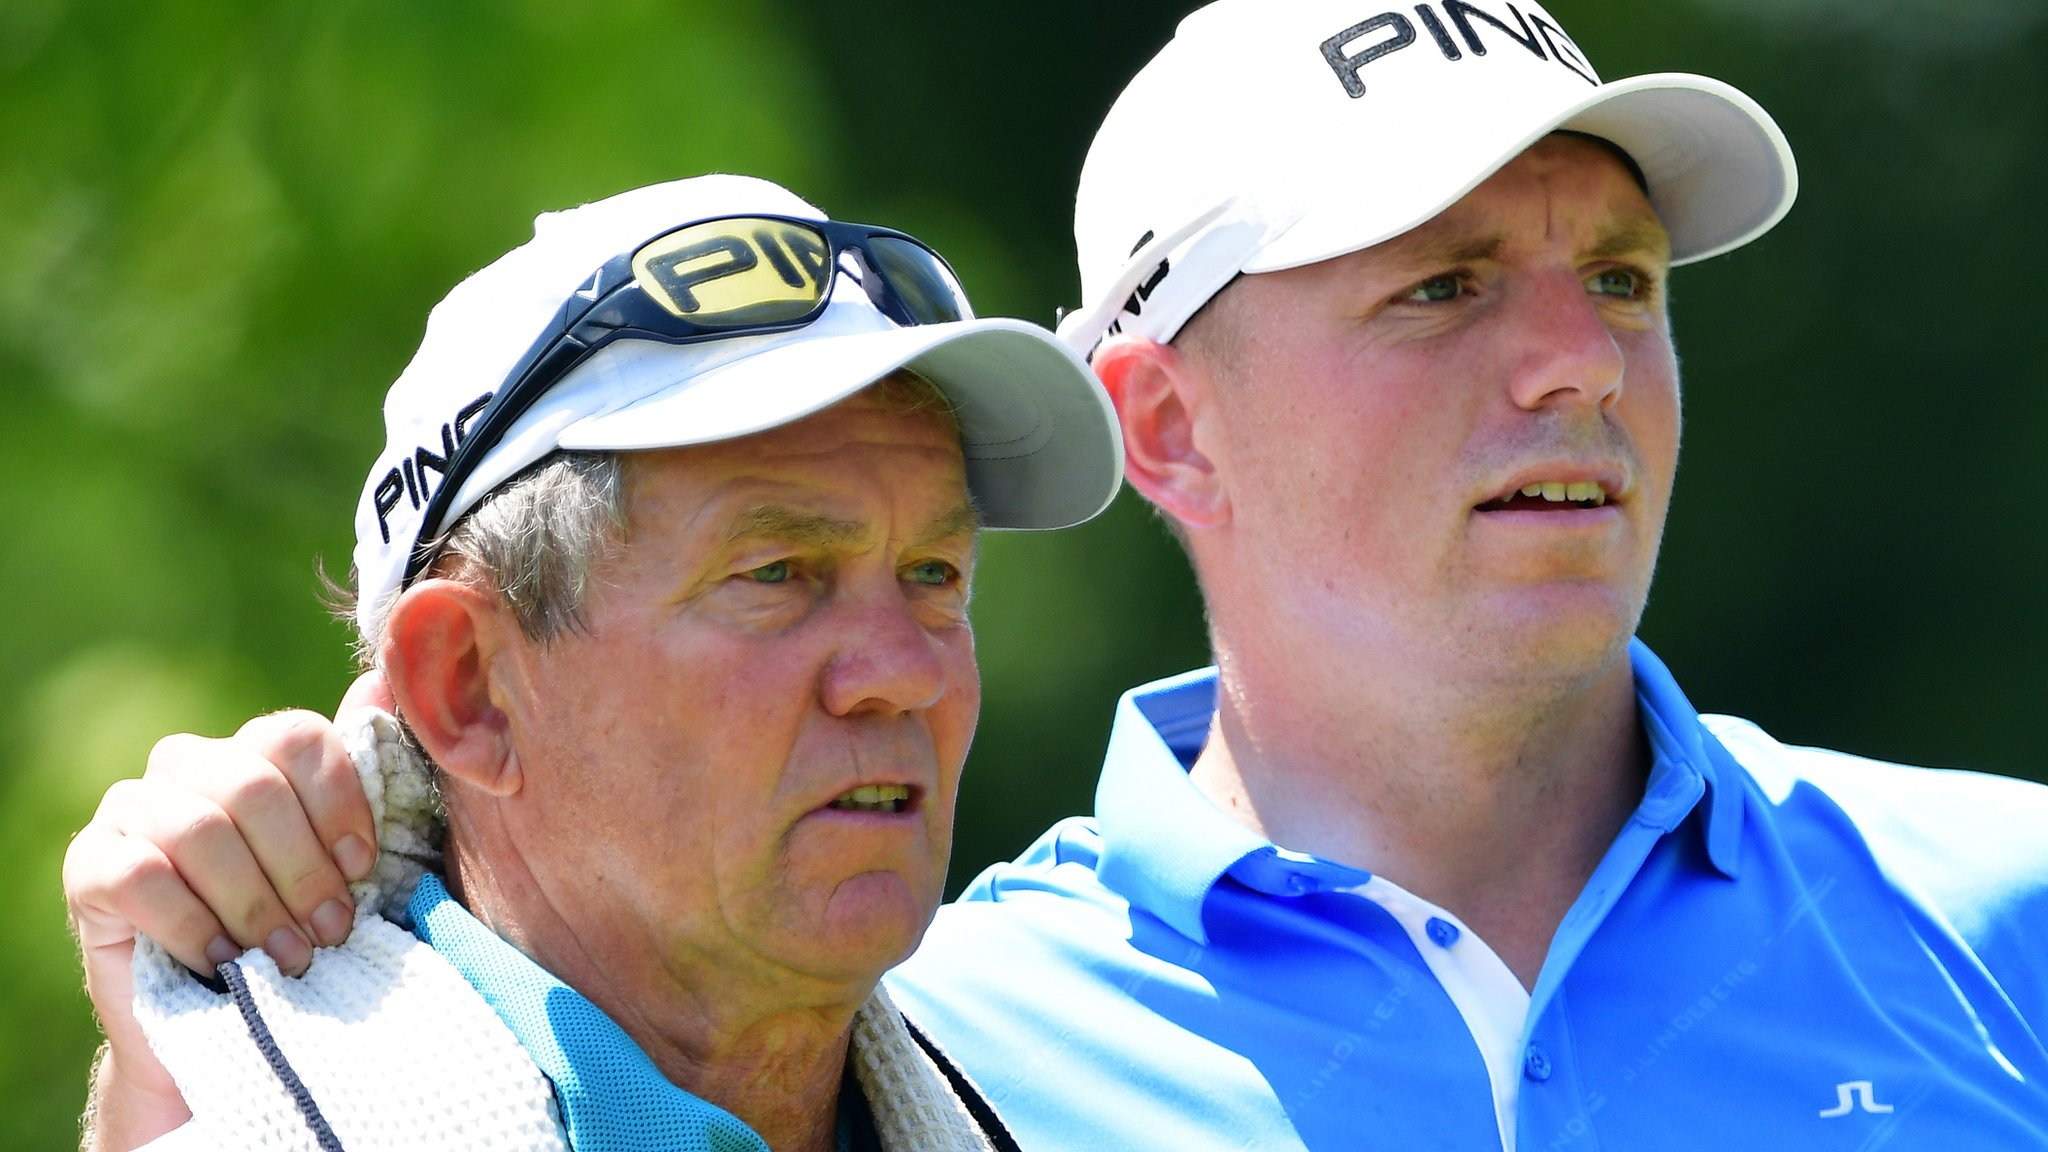 Veteran caddie McNeilly on Faldo, cancer and life 'on the bag'